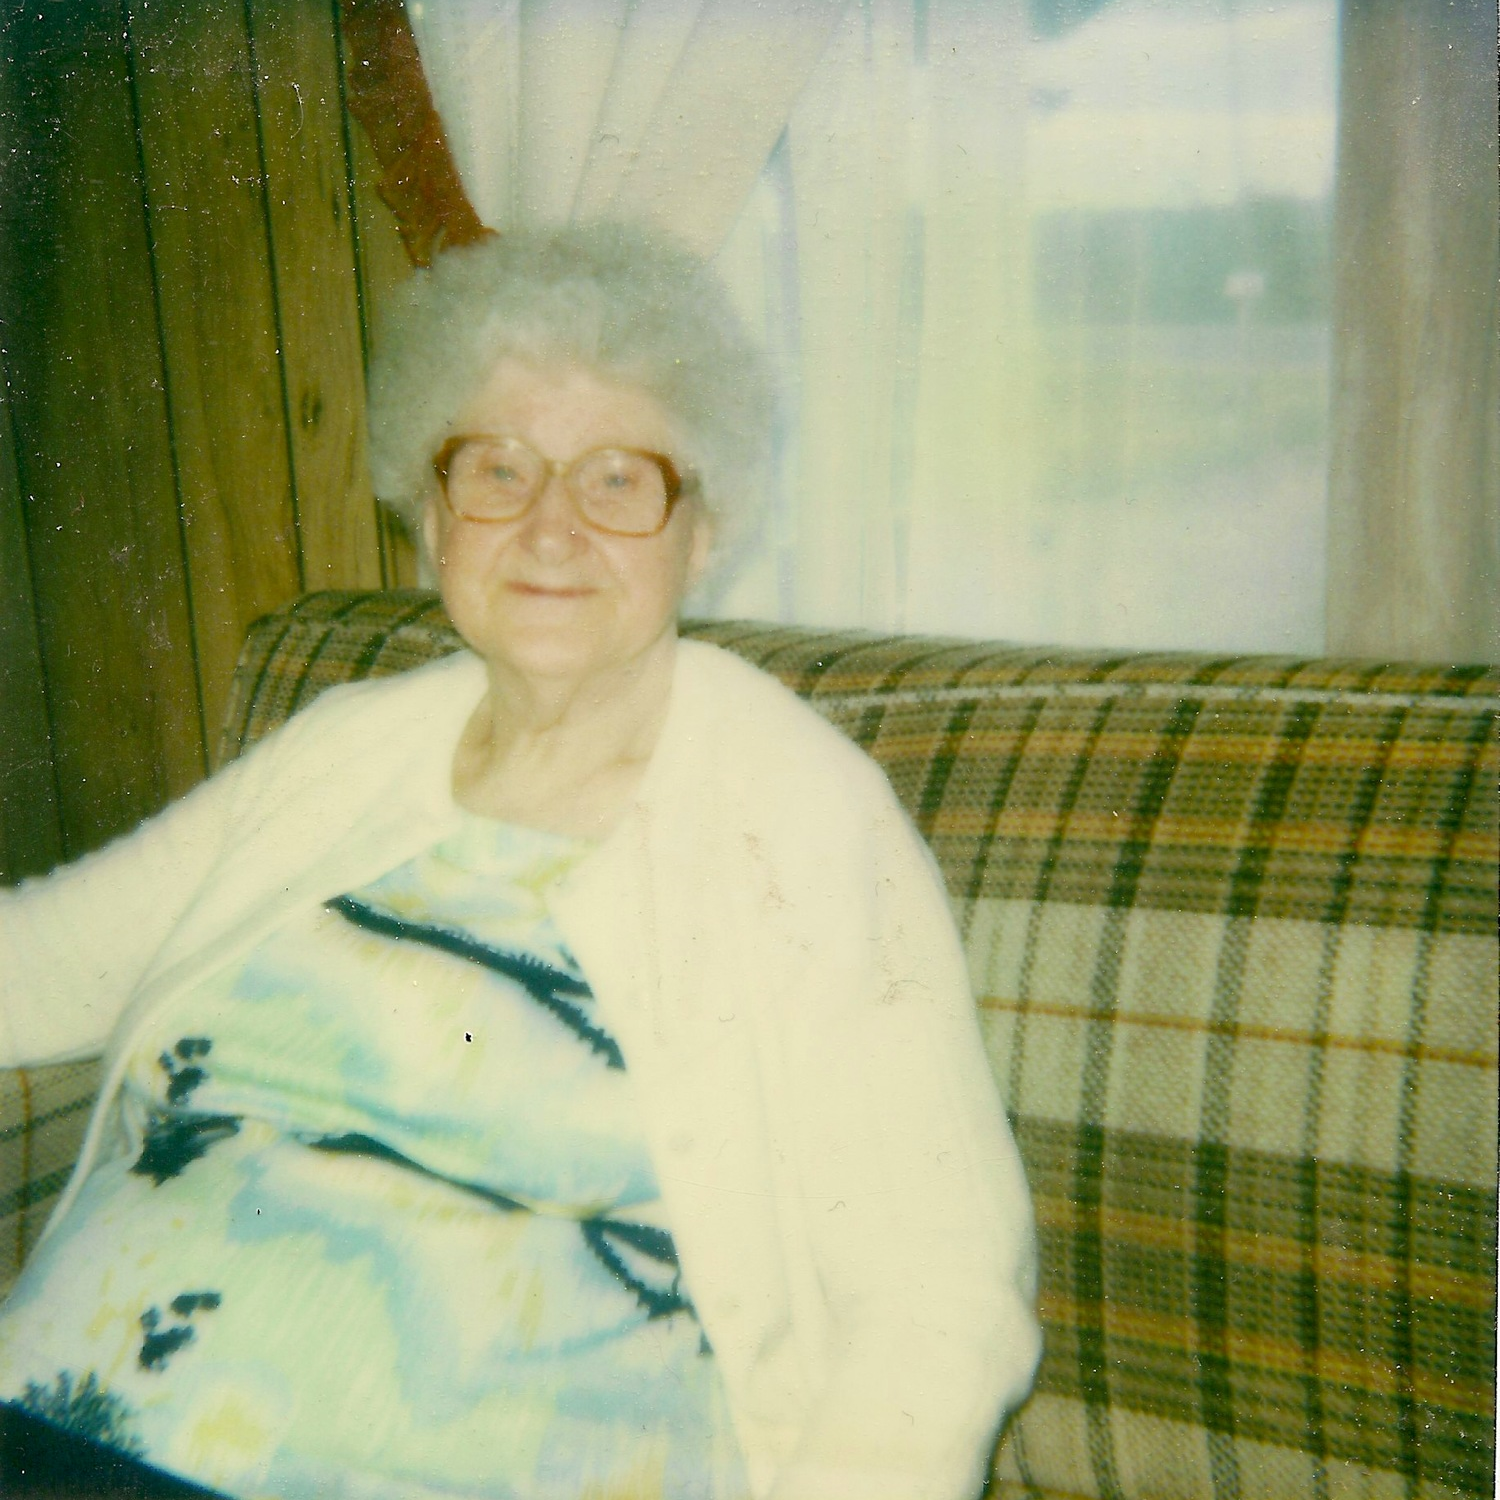 One of the first portraits I ever took.  This photograph of my Great Grandmother, Manilla Belle Reynolds Shorey, was taken in 1984 with a Polaroid camera when I was 8 years old.